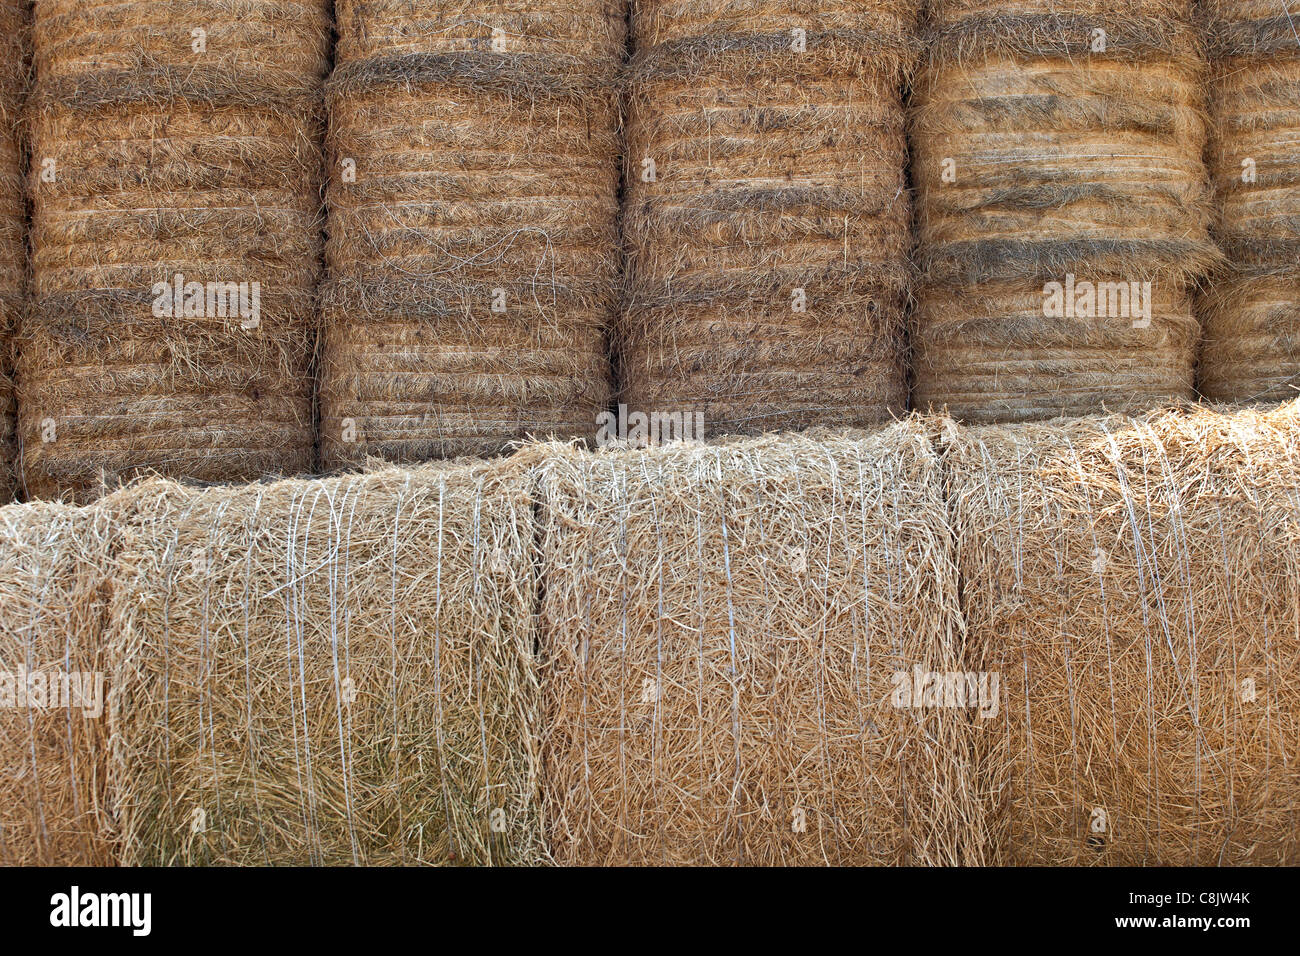 several bales of straw stacked and placed - Stock Image